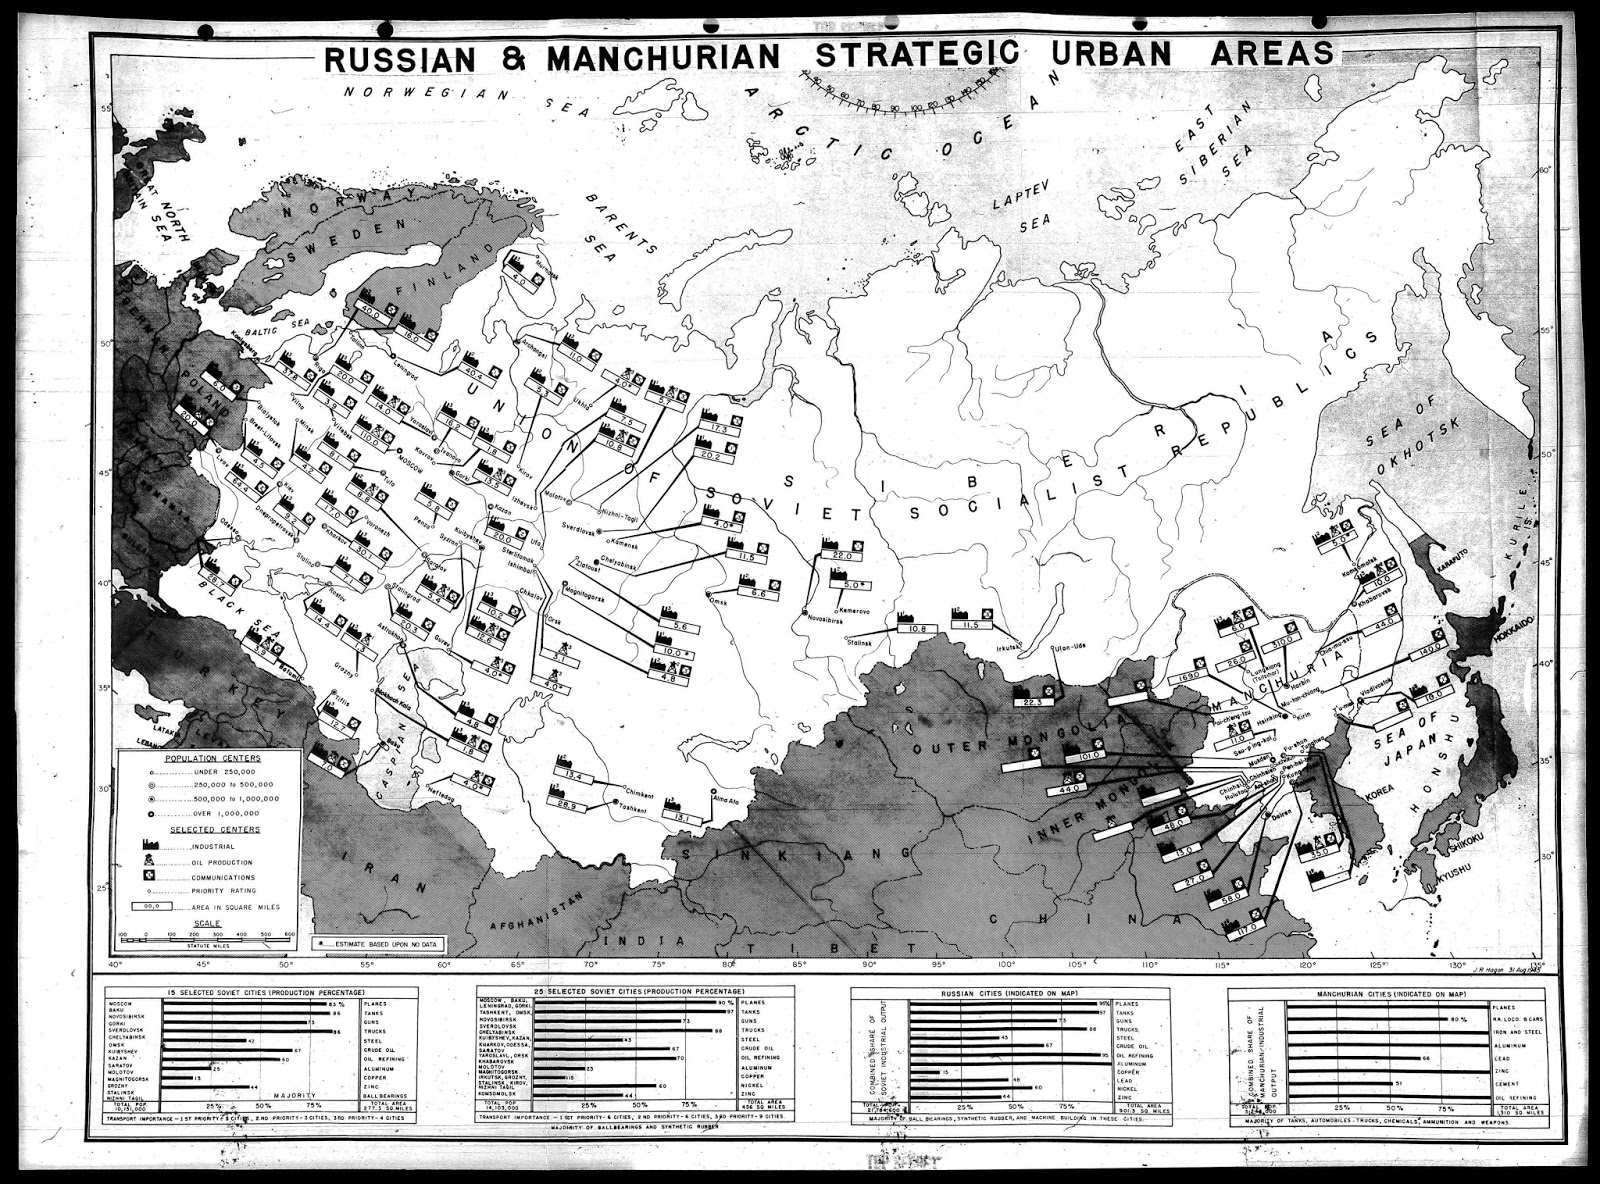 Major targets for nuclear bombs in Soviet Union, part of planning a nuclear attack on the USSR (September, 1945)